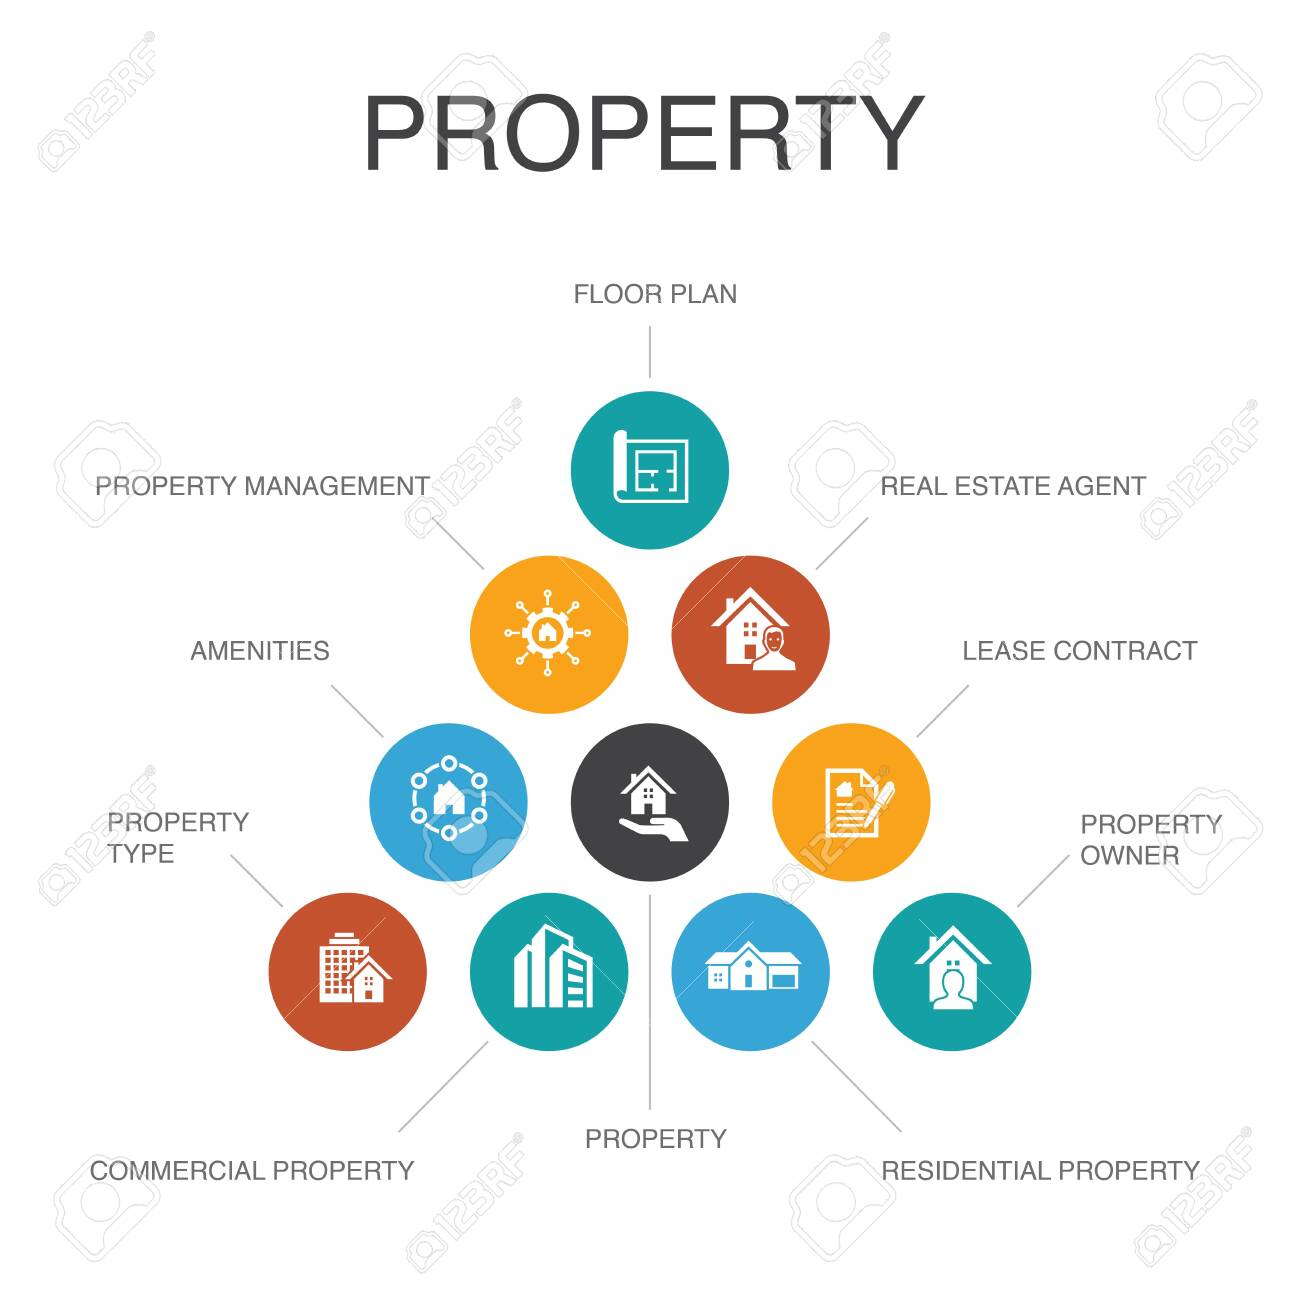 property Infographic 10 steps concept.property type, amenities, lease contract, floor plan simple icons - 151459287